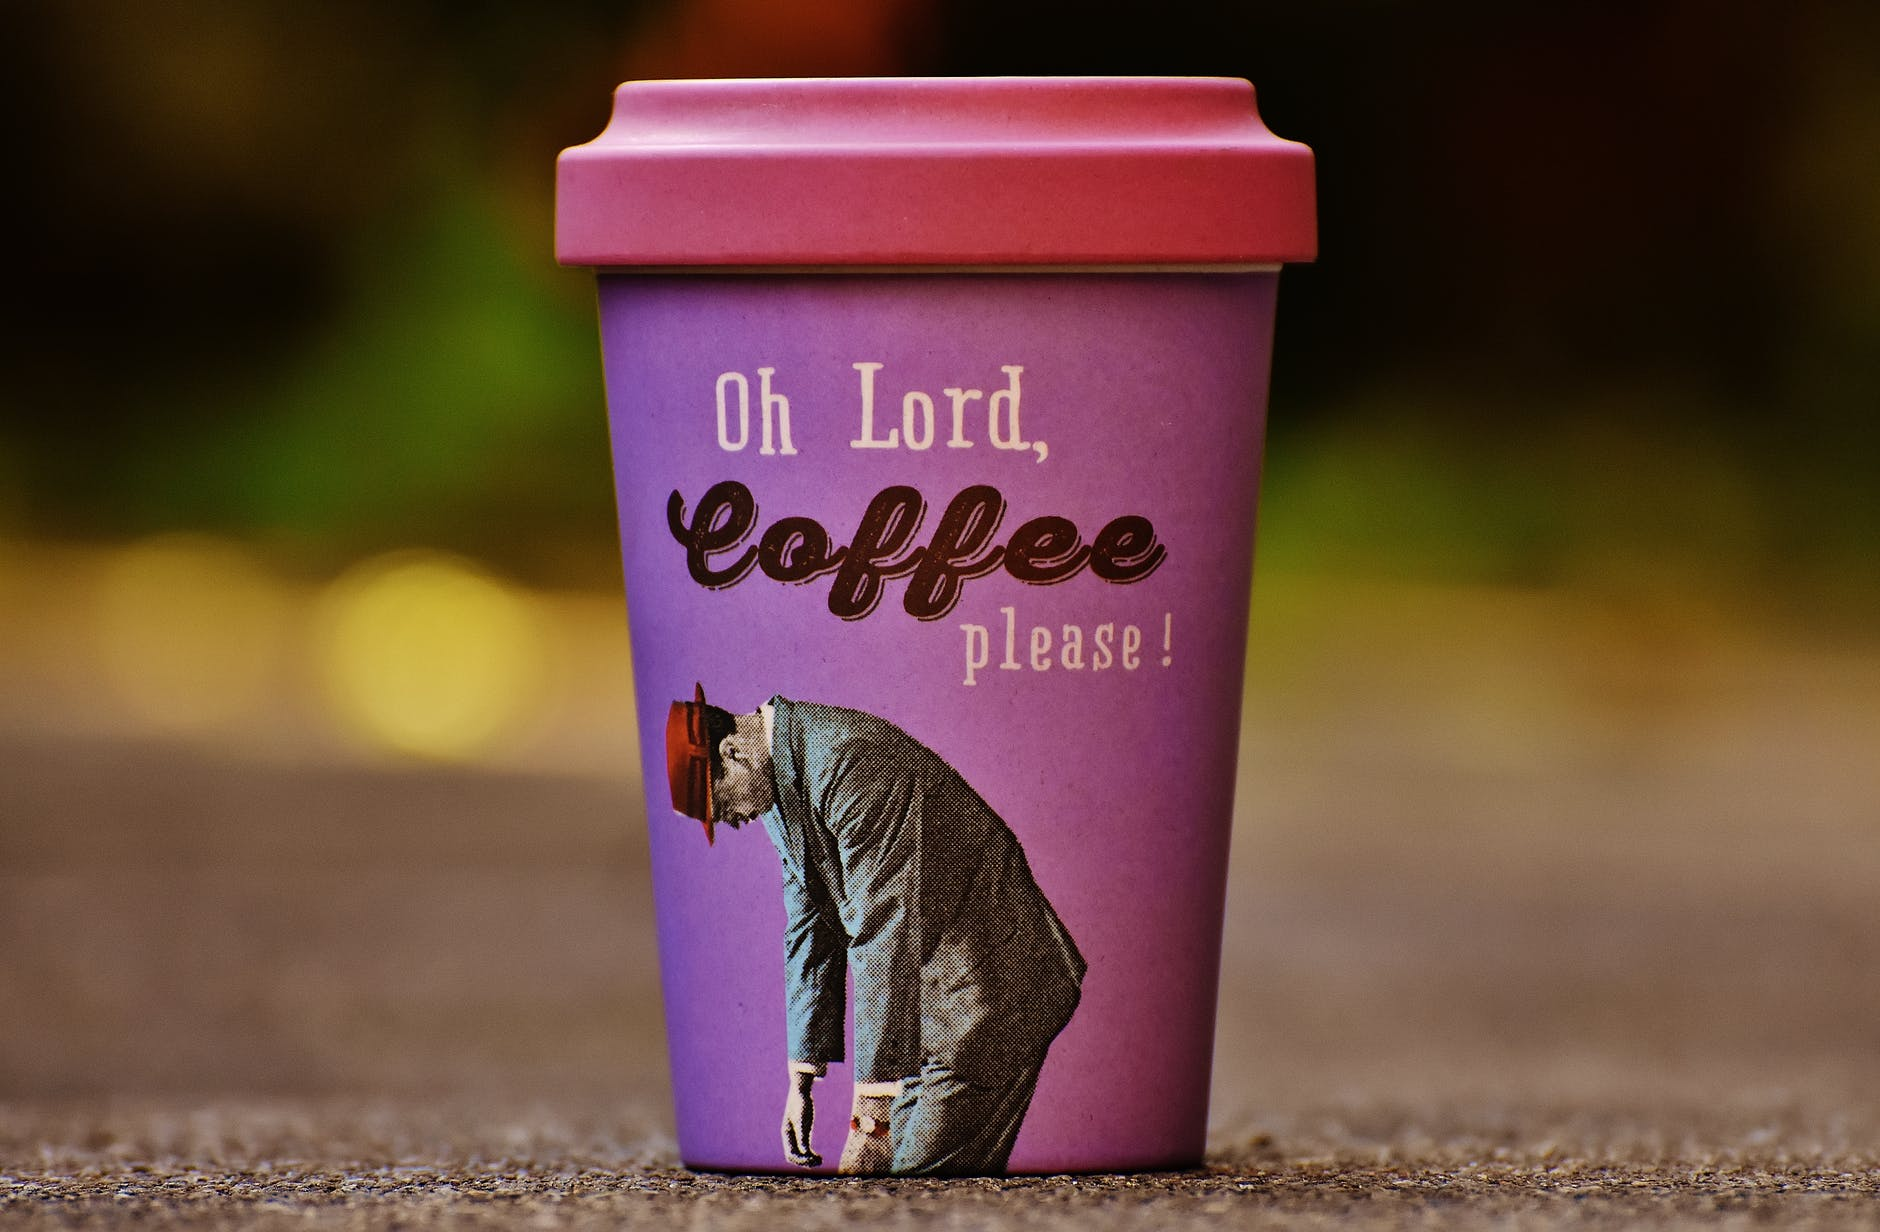 Oh Lord Coffee please